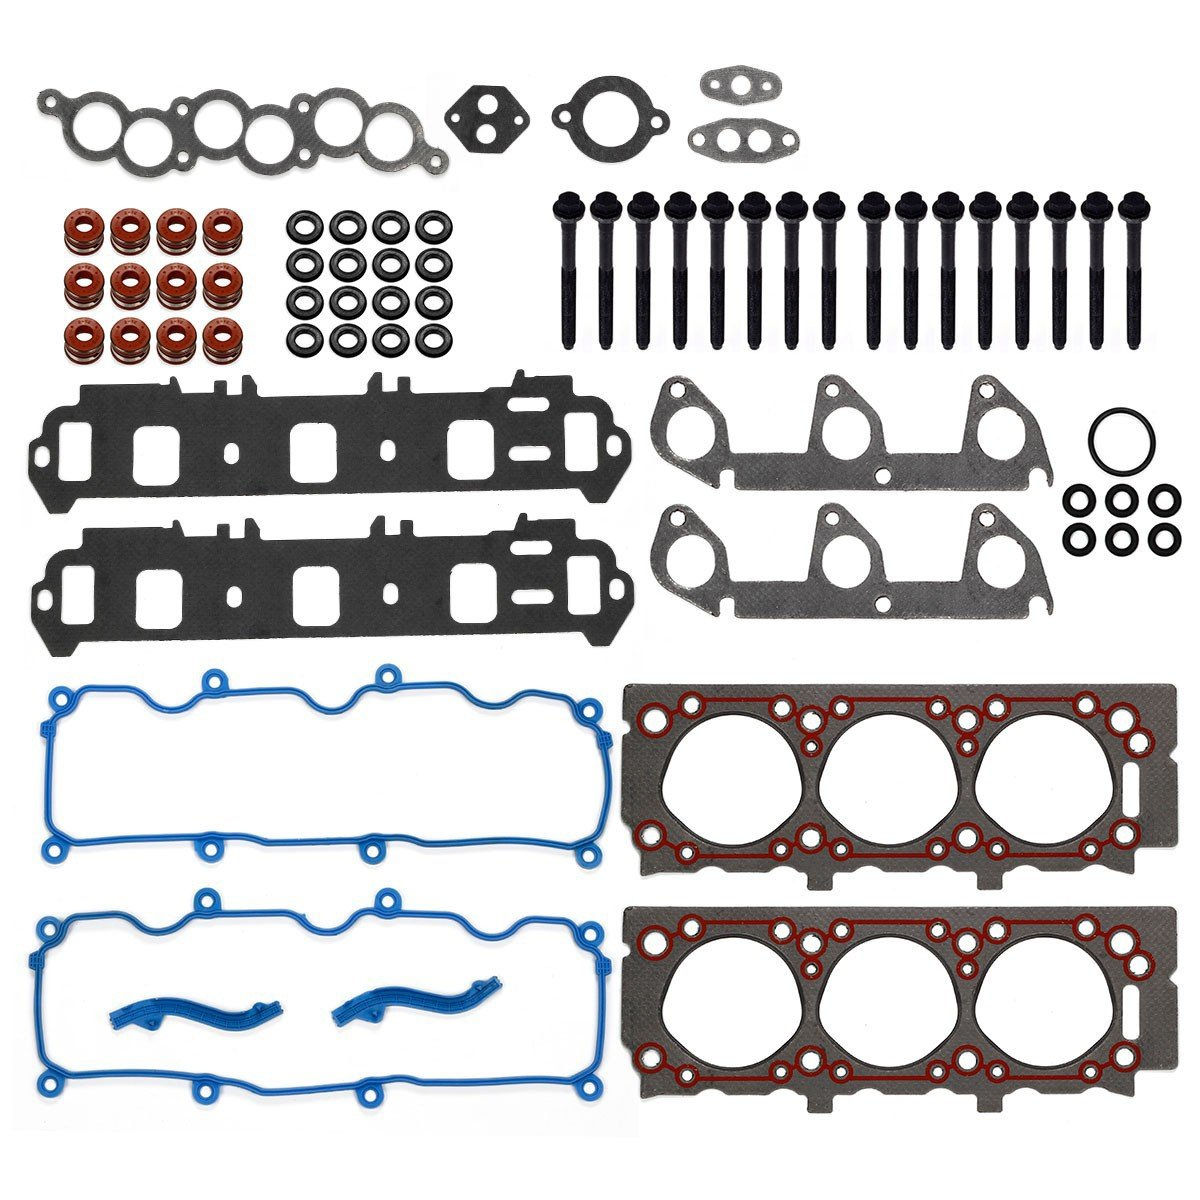 Cylinder Head Gasket With Bolts Kit Fits For 1998 99 1999 Ford Explorer Ohv Engine Diagram 2000 01 Ranger Mazda 30l Automotive